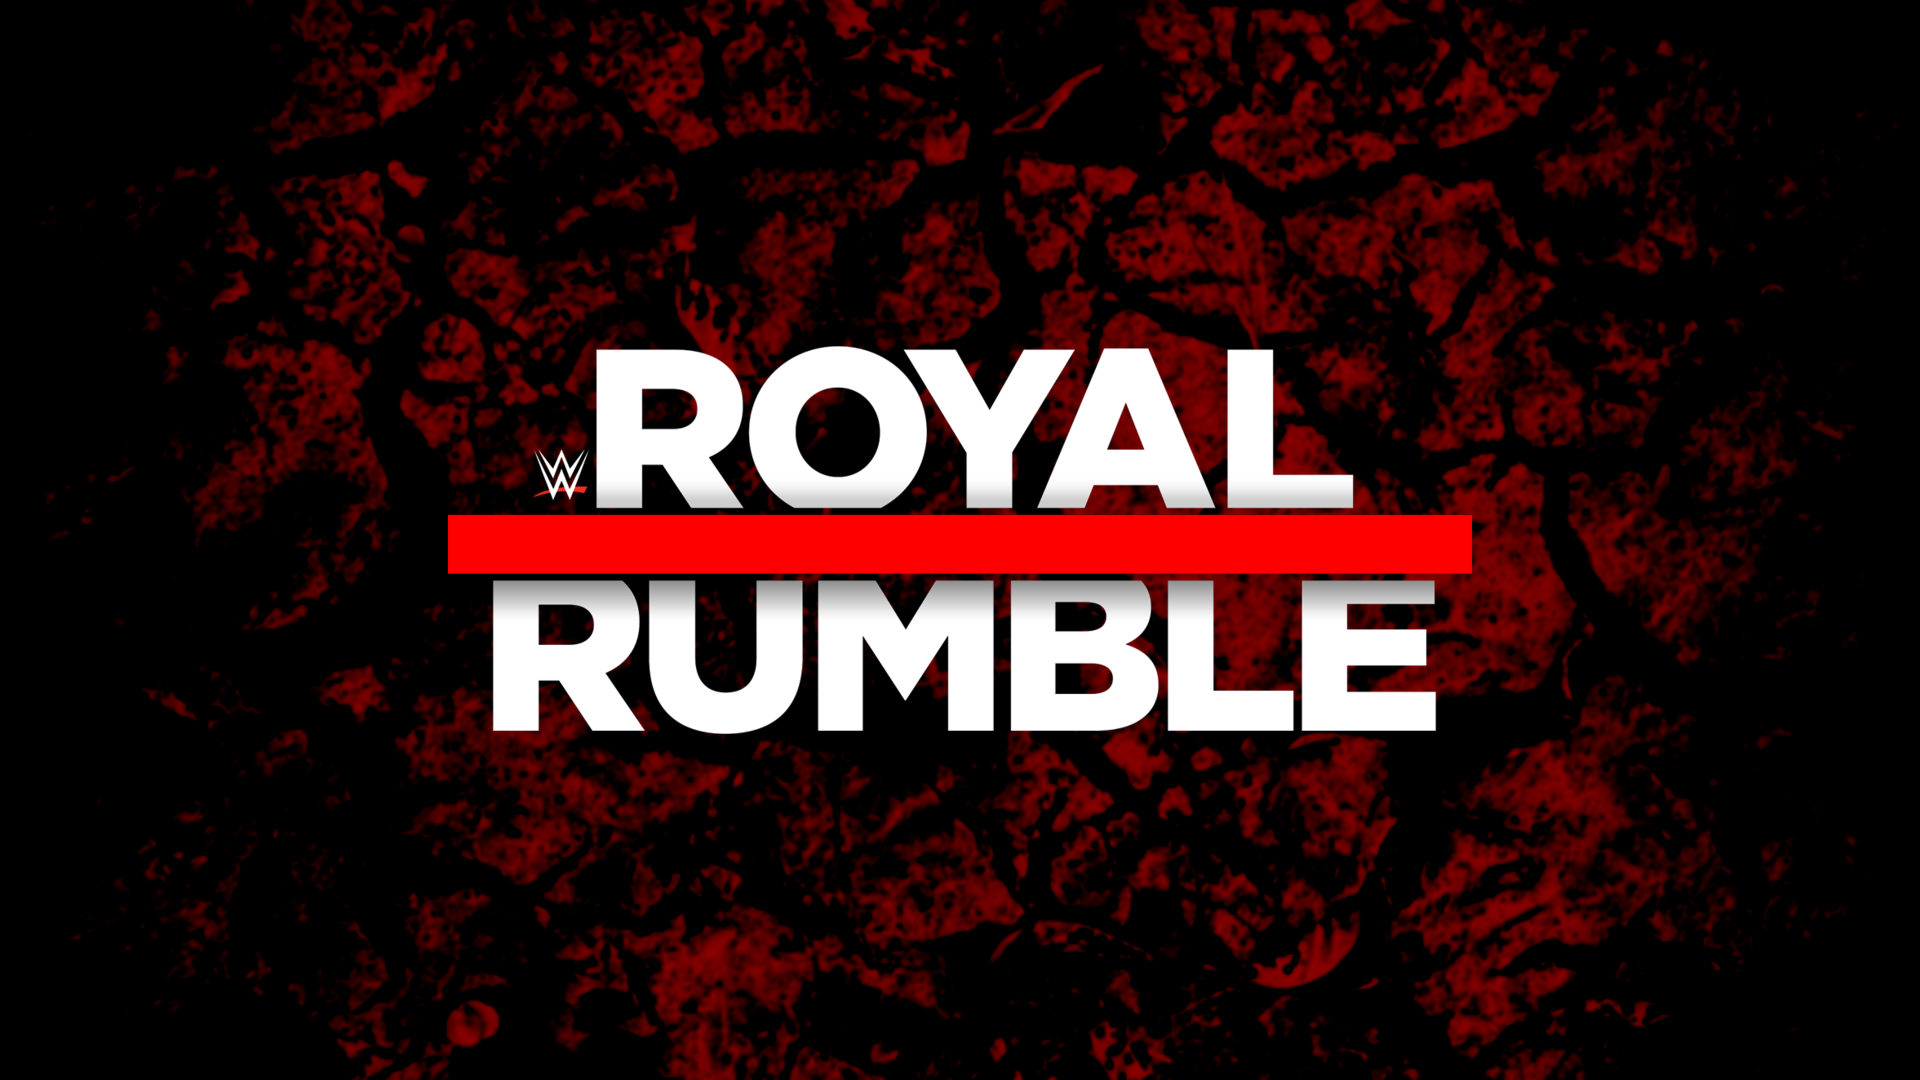 Wwe royal rumble 2018 speed dating commercial